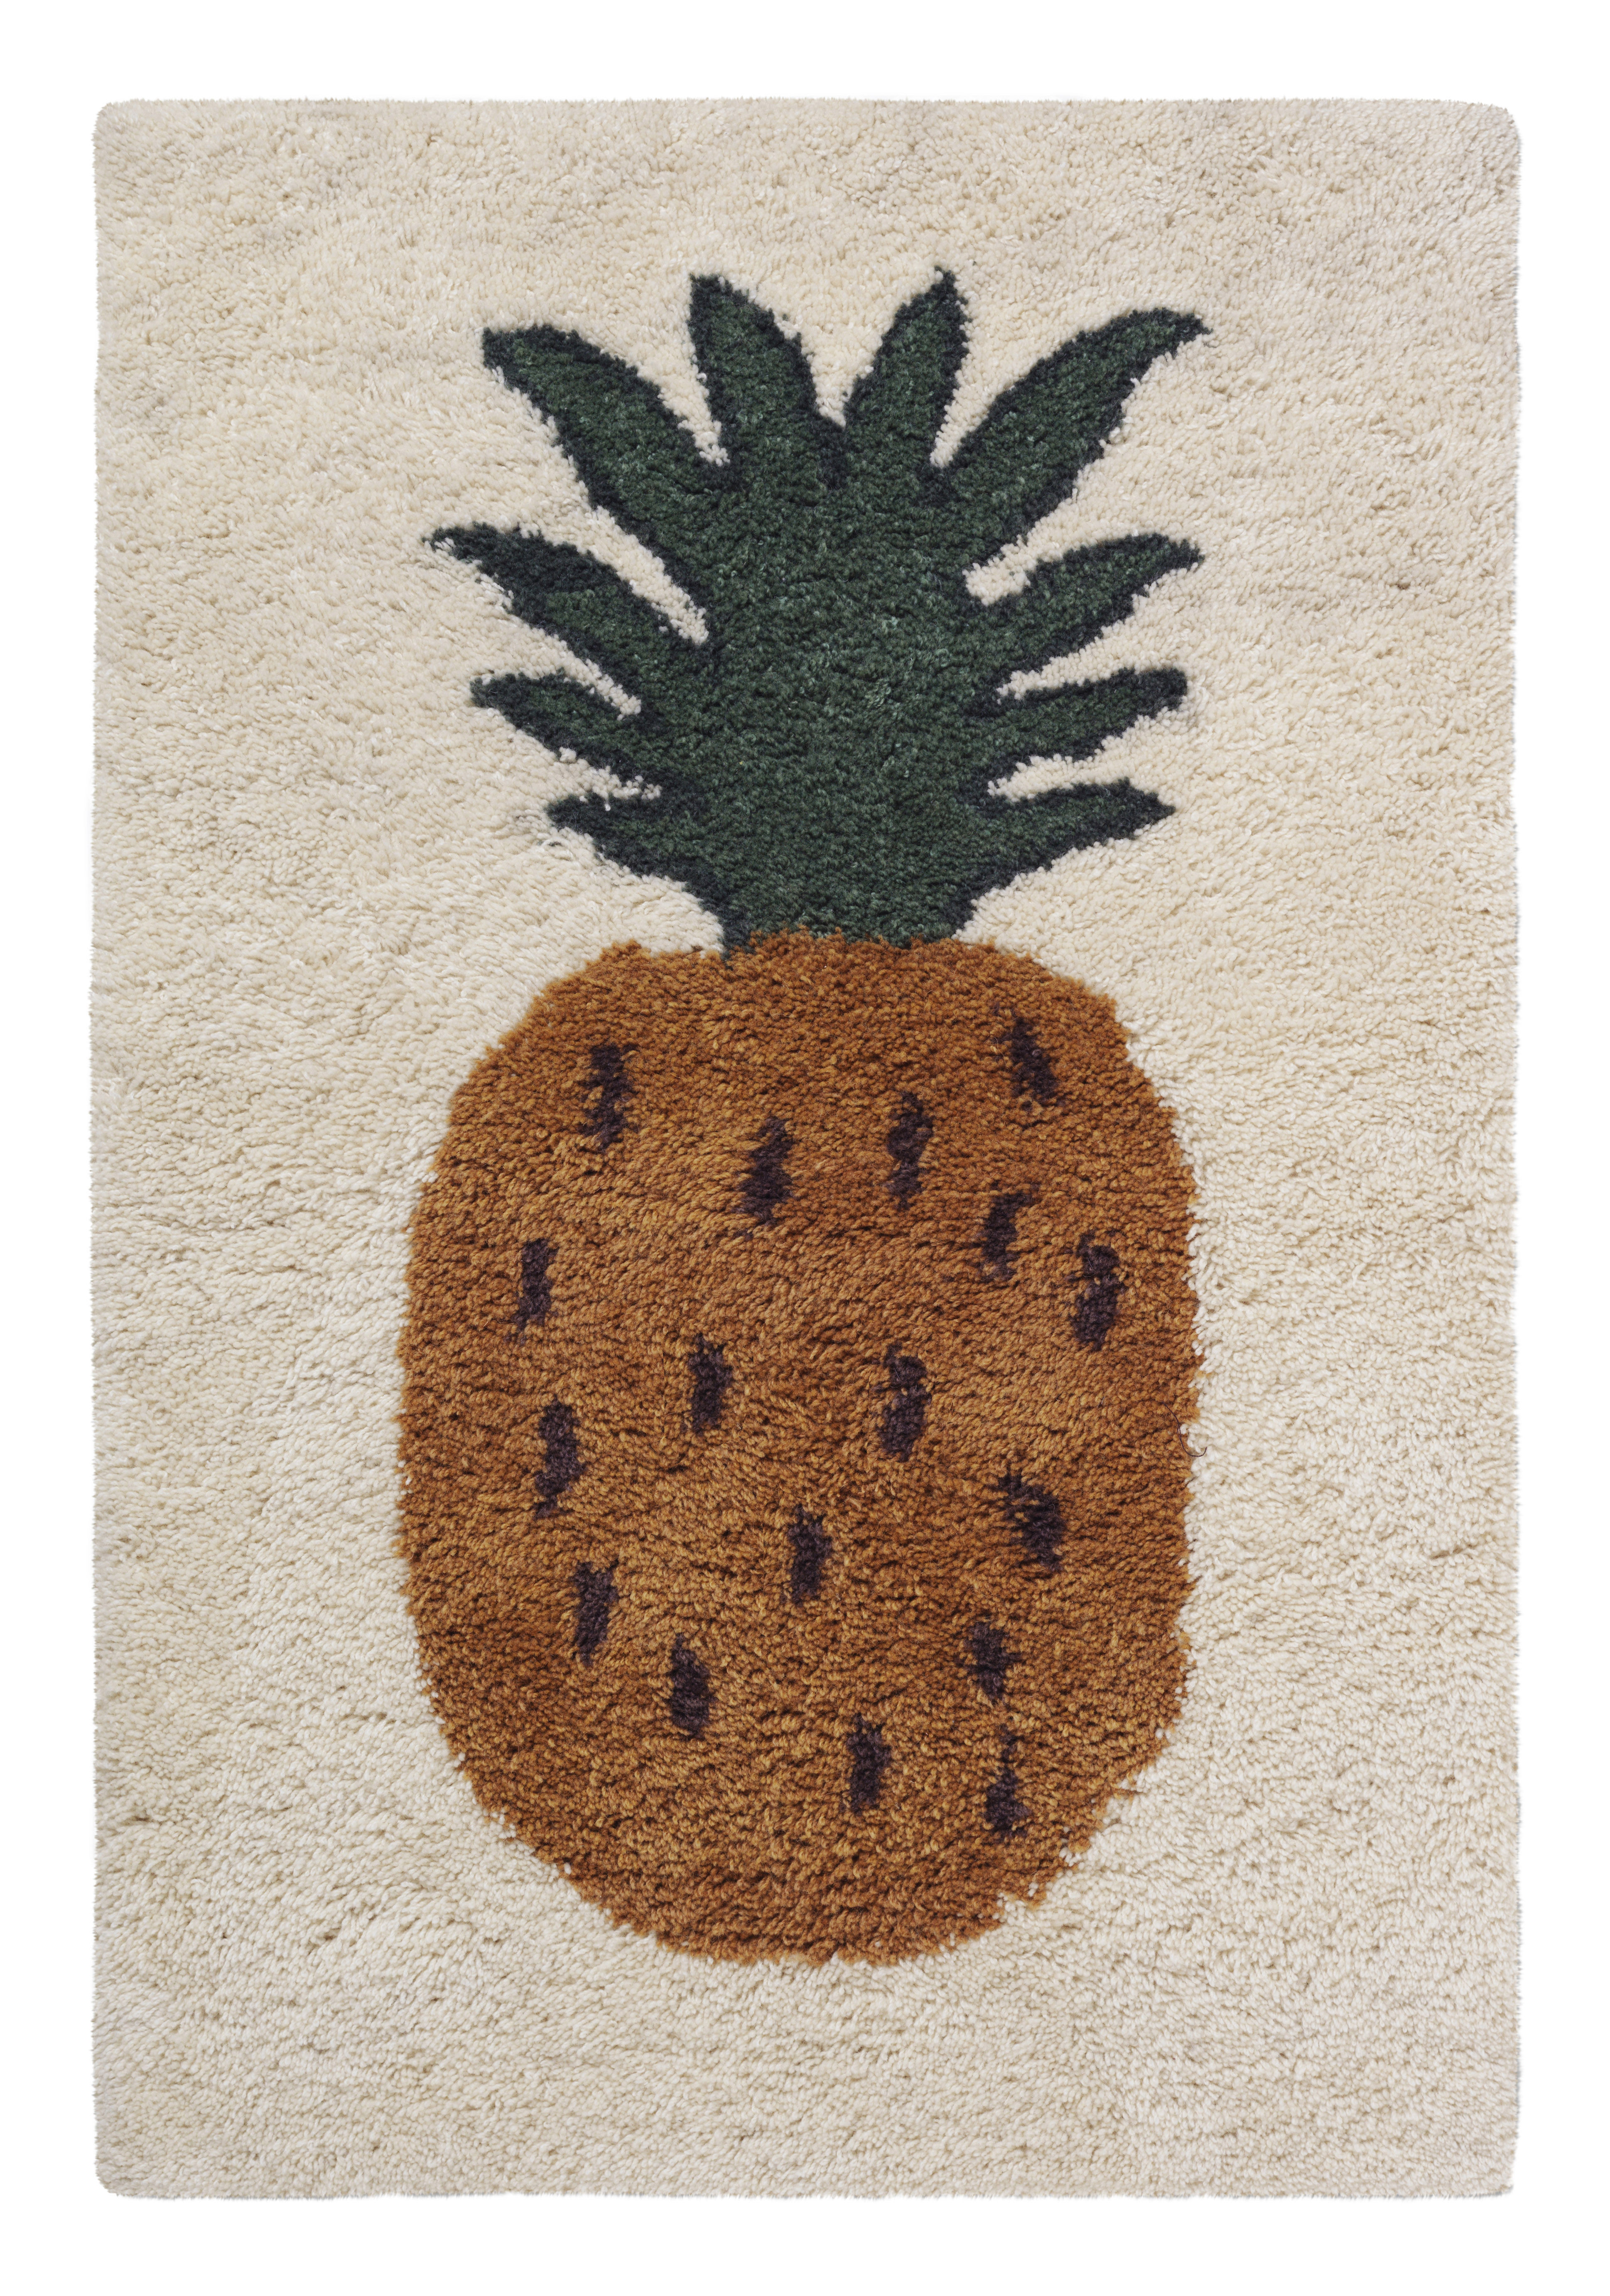 Furniture - Kids Furniture - Fruiticana - Ananas Rug - / Large - Tissé main by Ferm Living - Ananas - Cotton, Wool